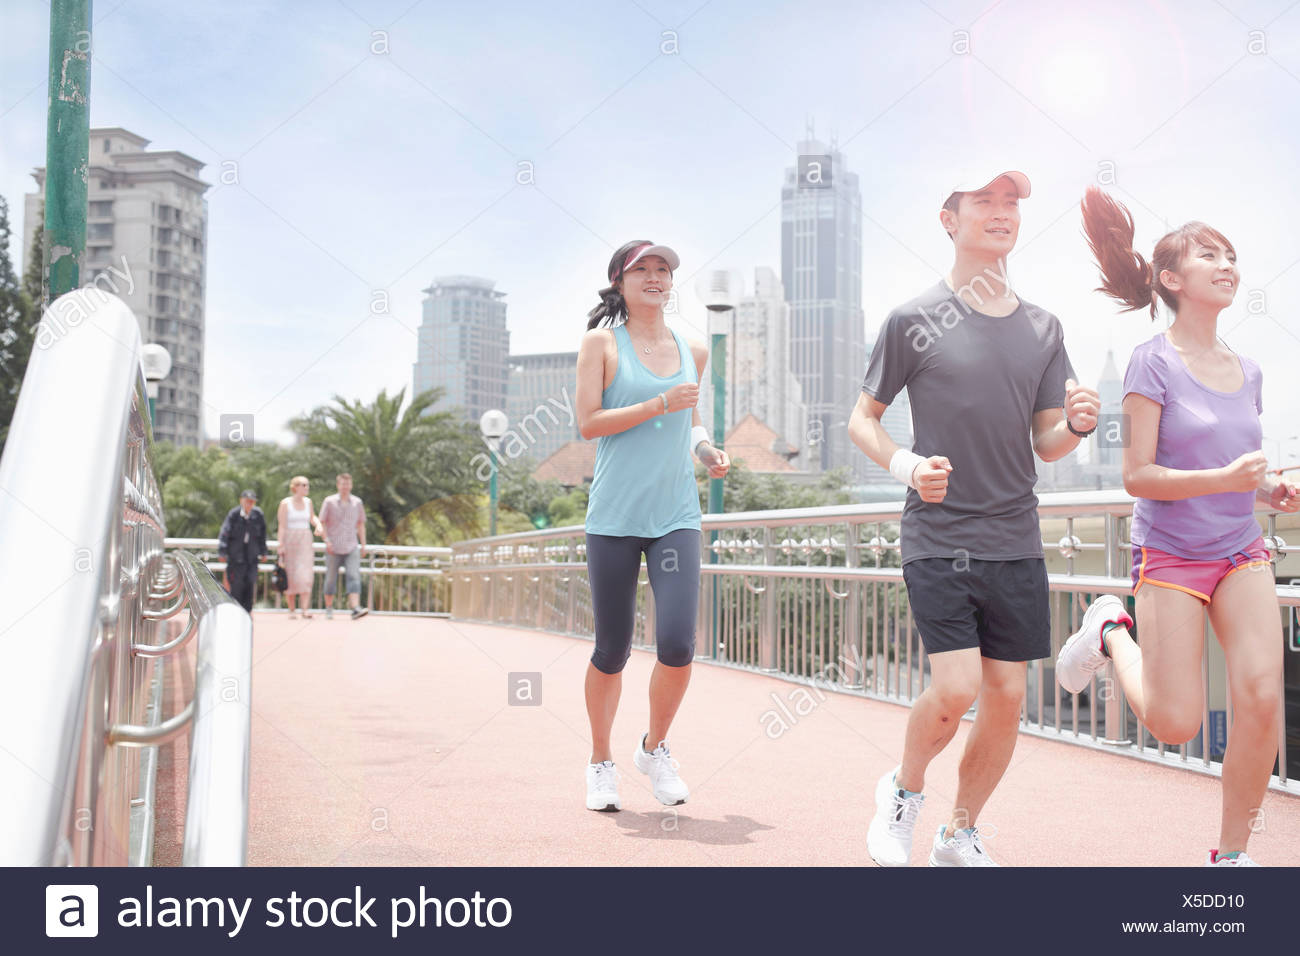 Runners in Shanghai, China - Stock Image